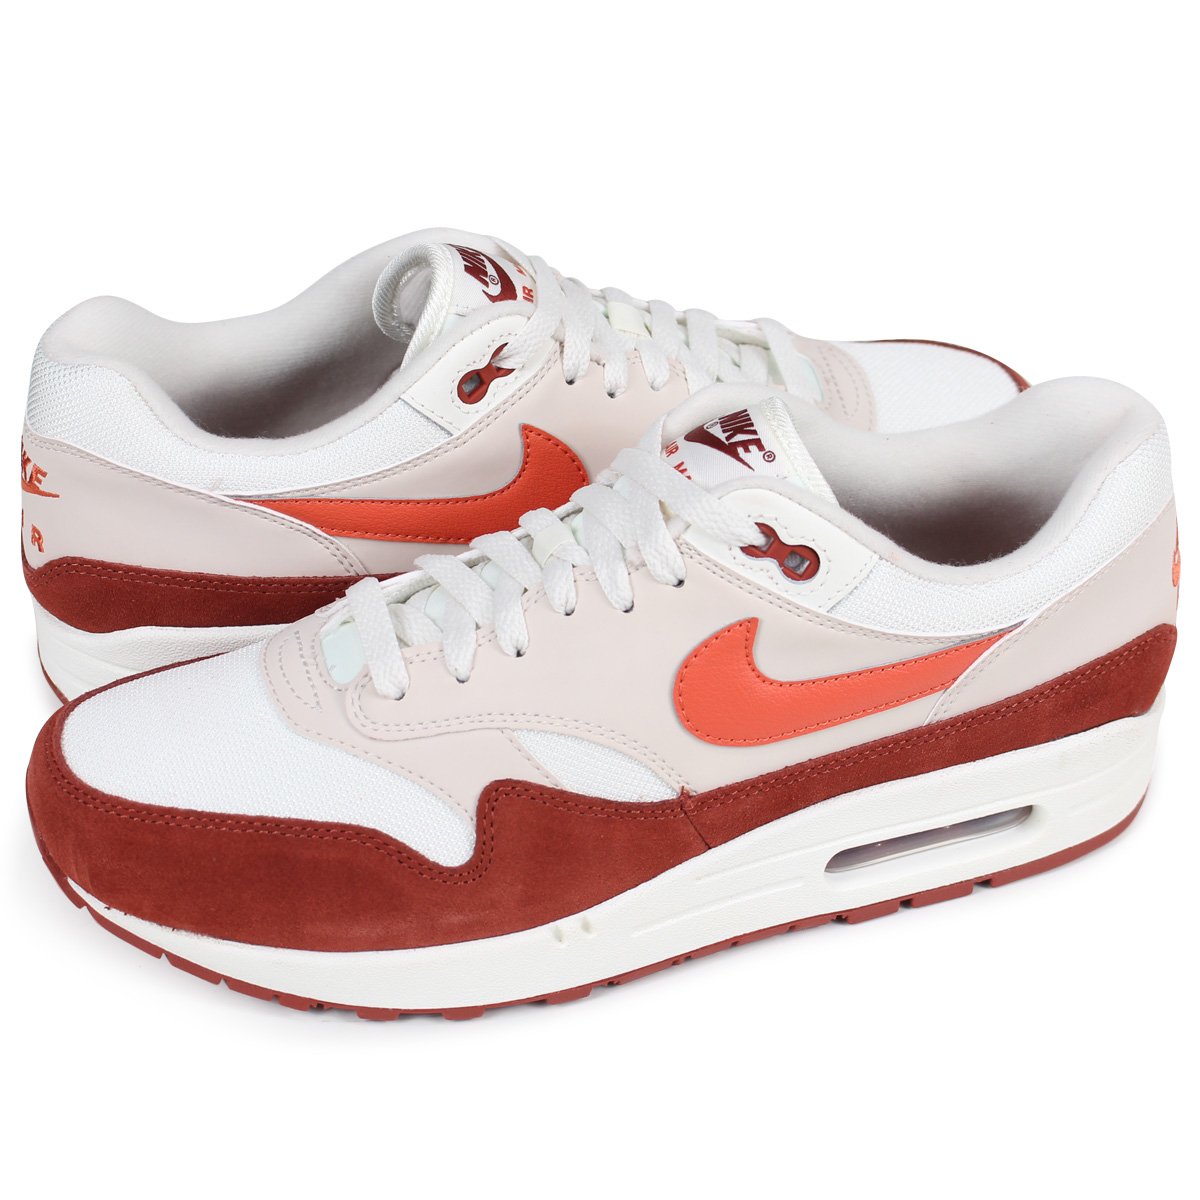 NIKE AIR MAX 1 Kie Ney AMAX 1 sneakers men AH8145 104 off white [load planned Shinnyu load in reservation product 413 containing]